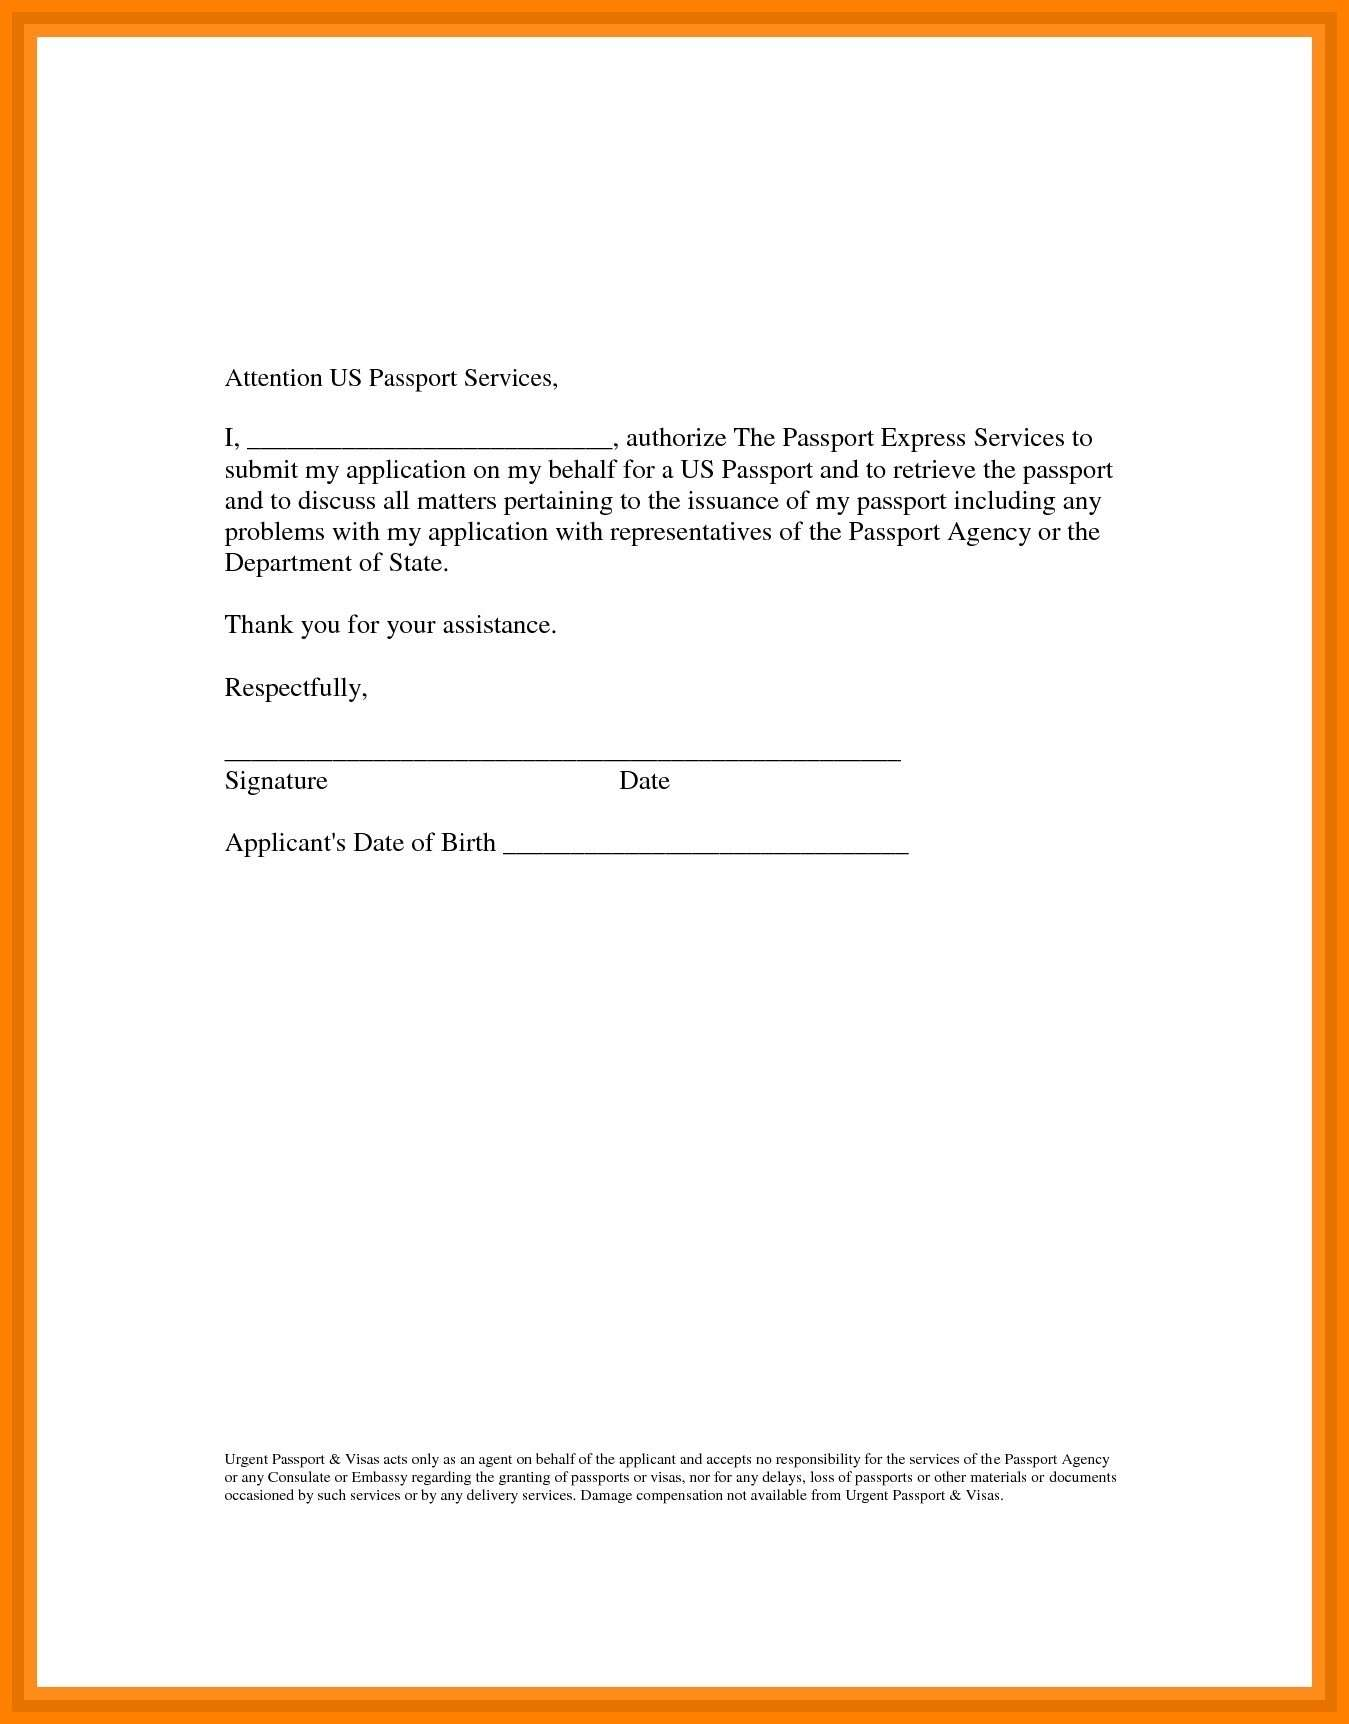 Passport Collection Authorization Letter Sample from authorizationletter.net